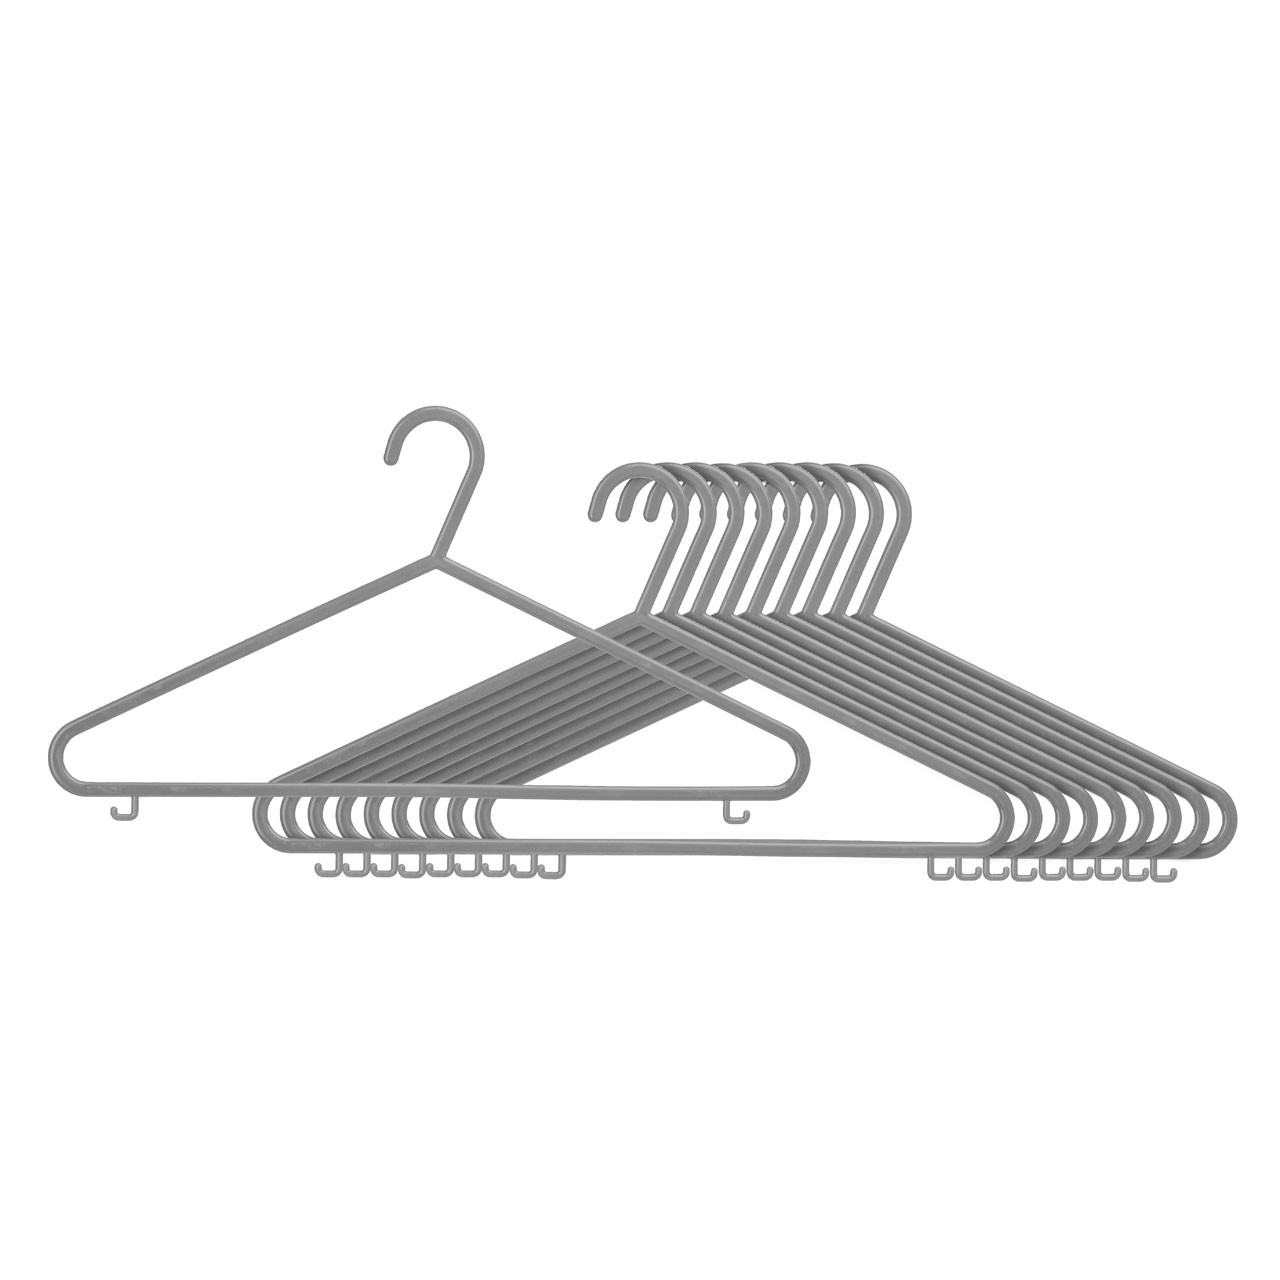 Plastic Hangers - Set of 20- Grey